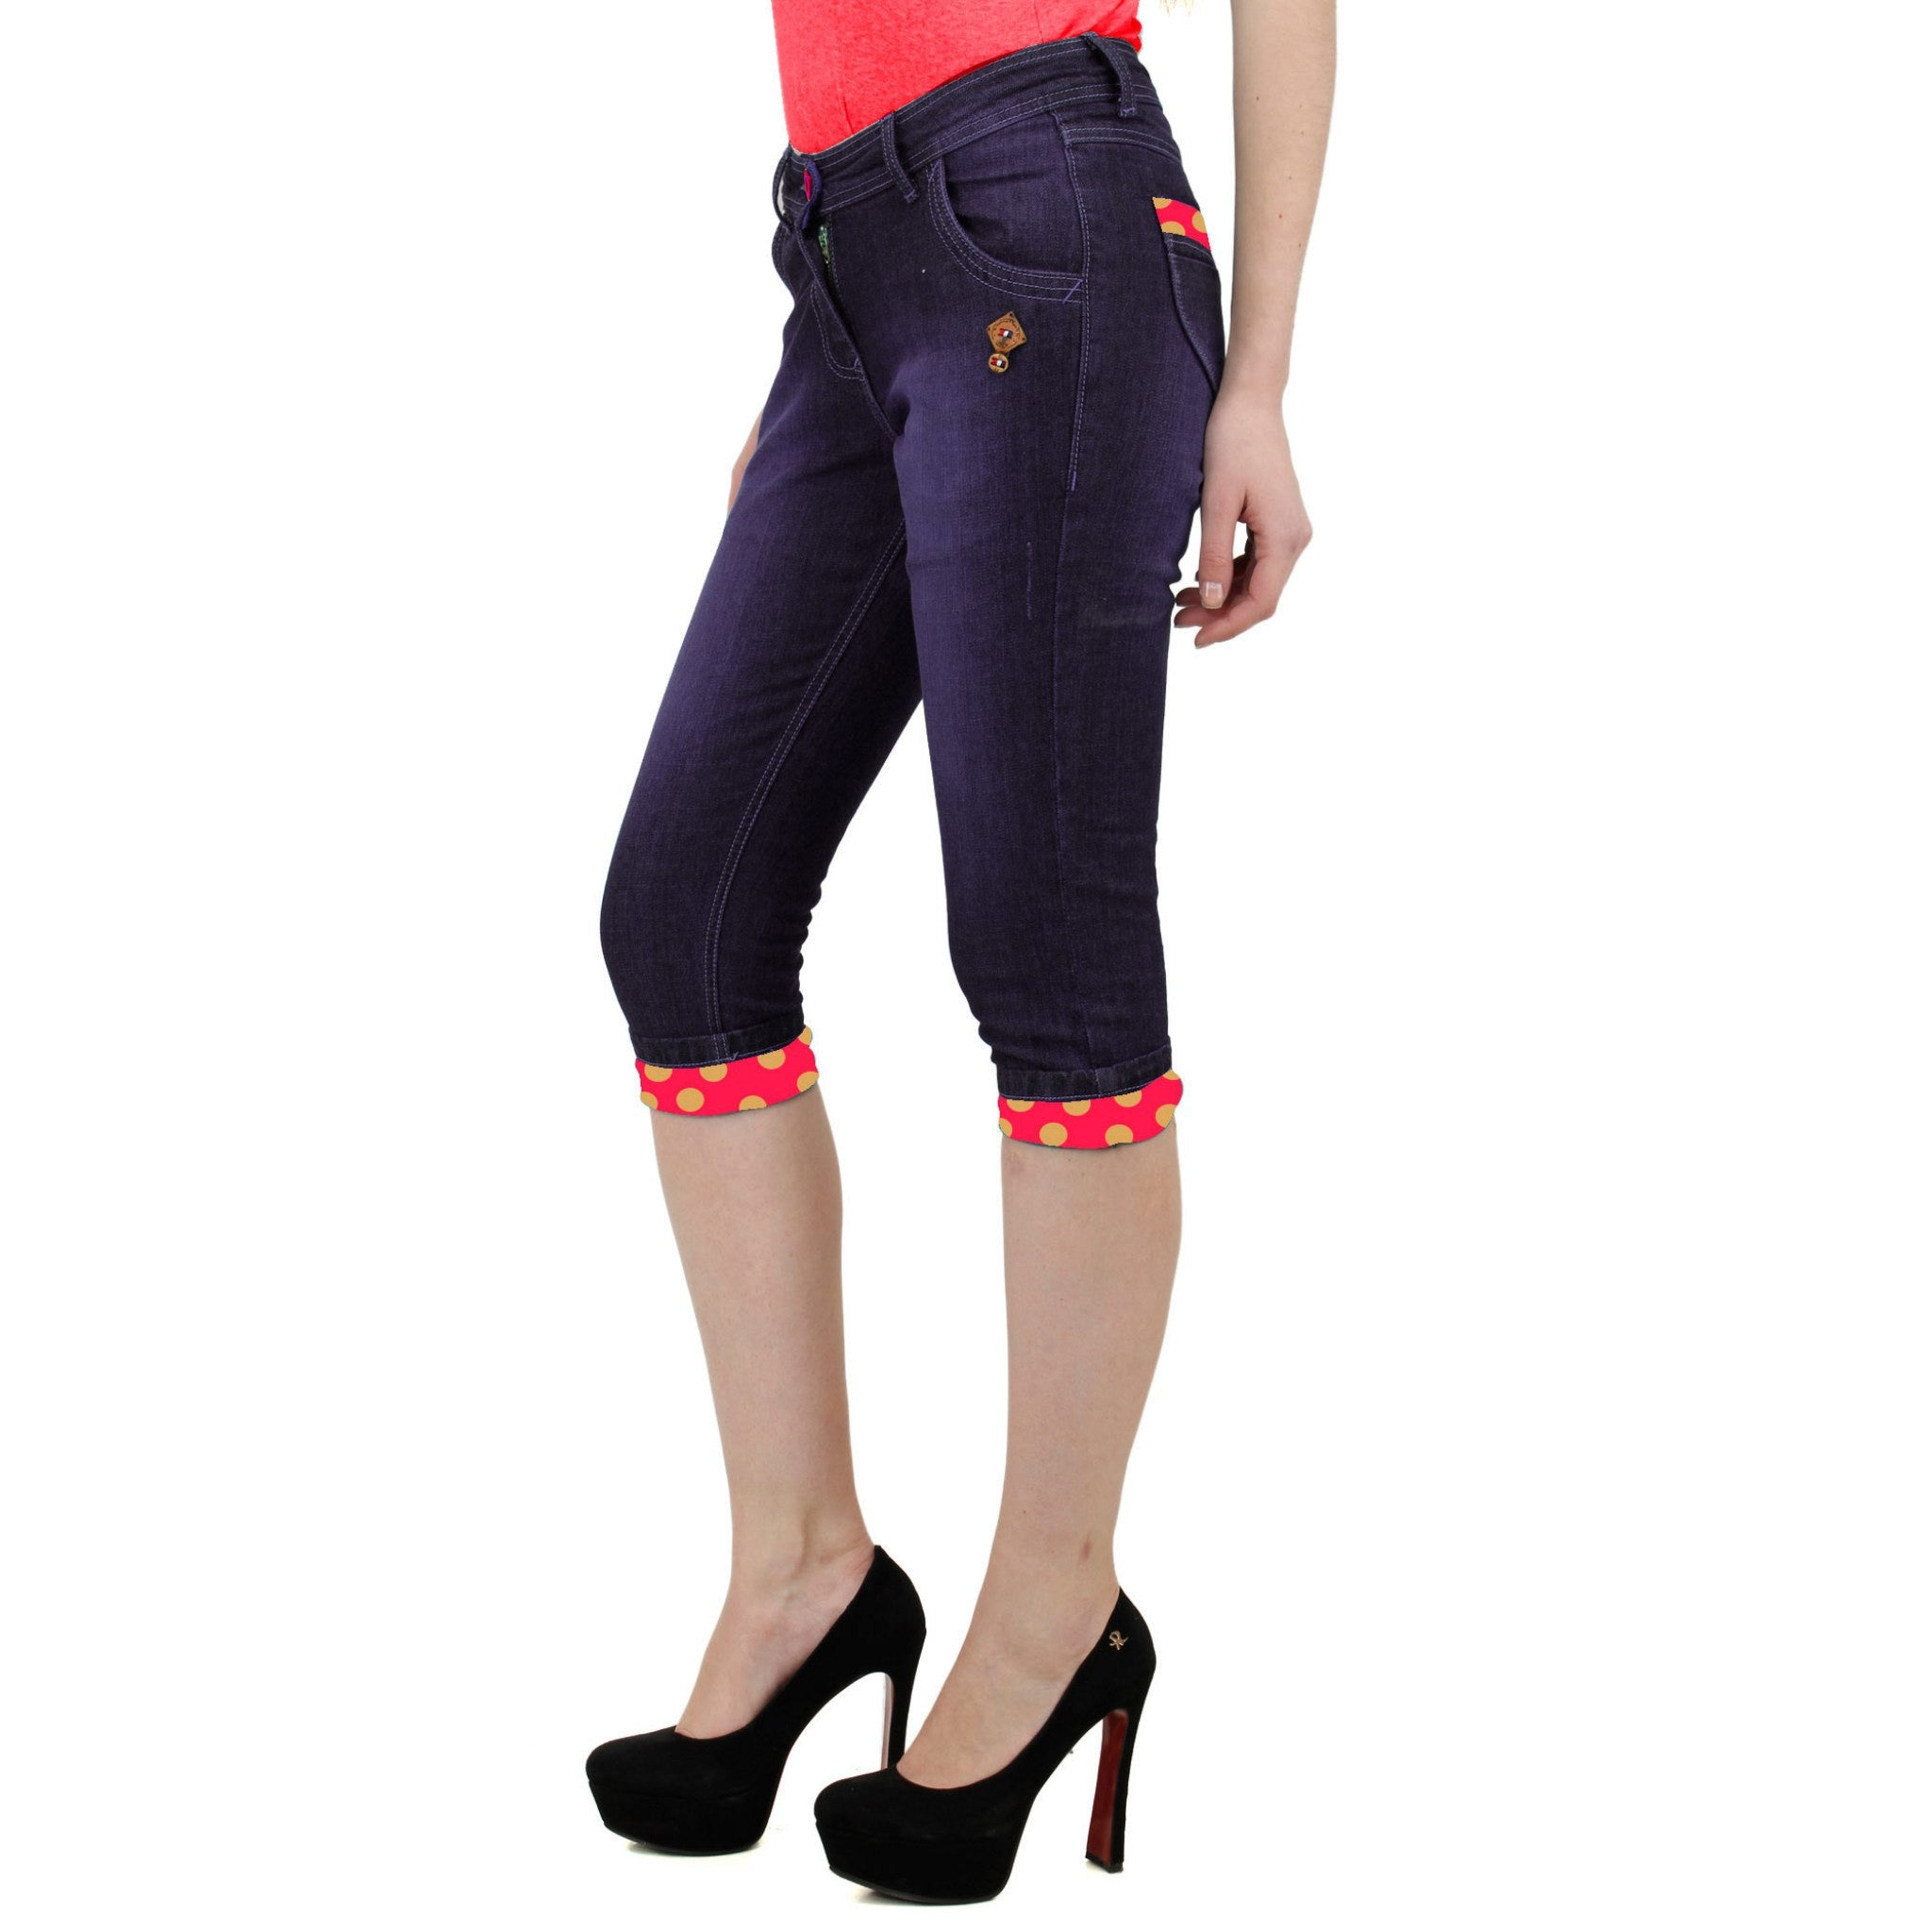 Dark Magenta Denim Capri left side view